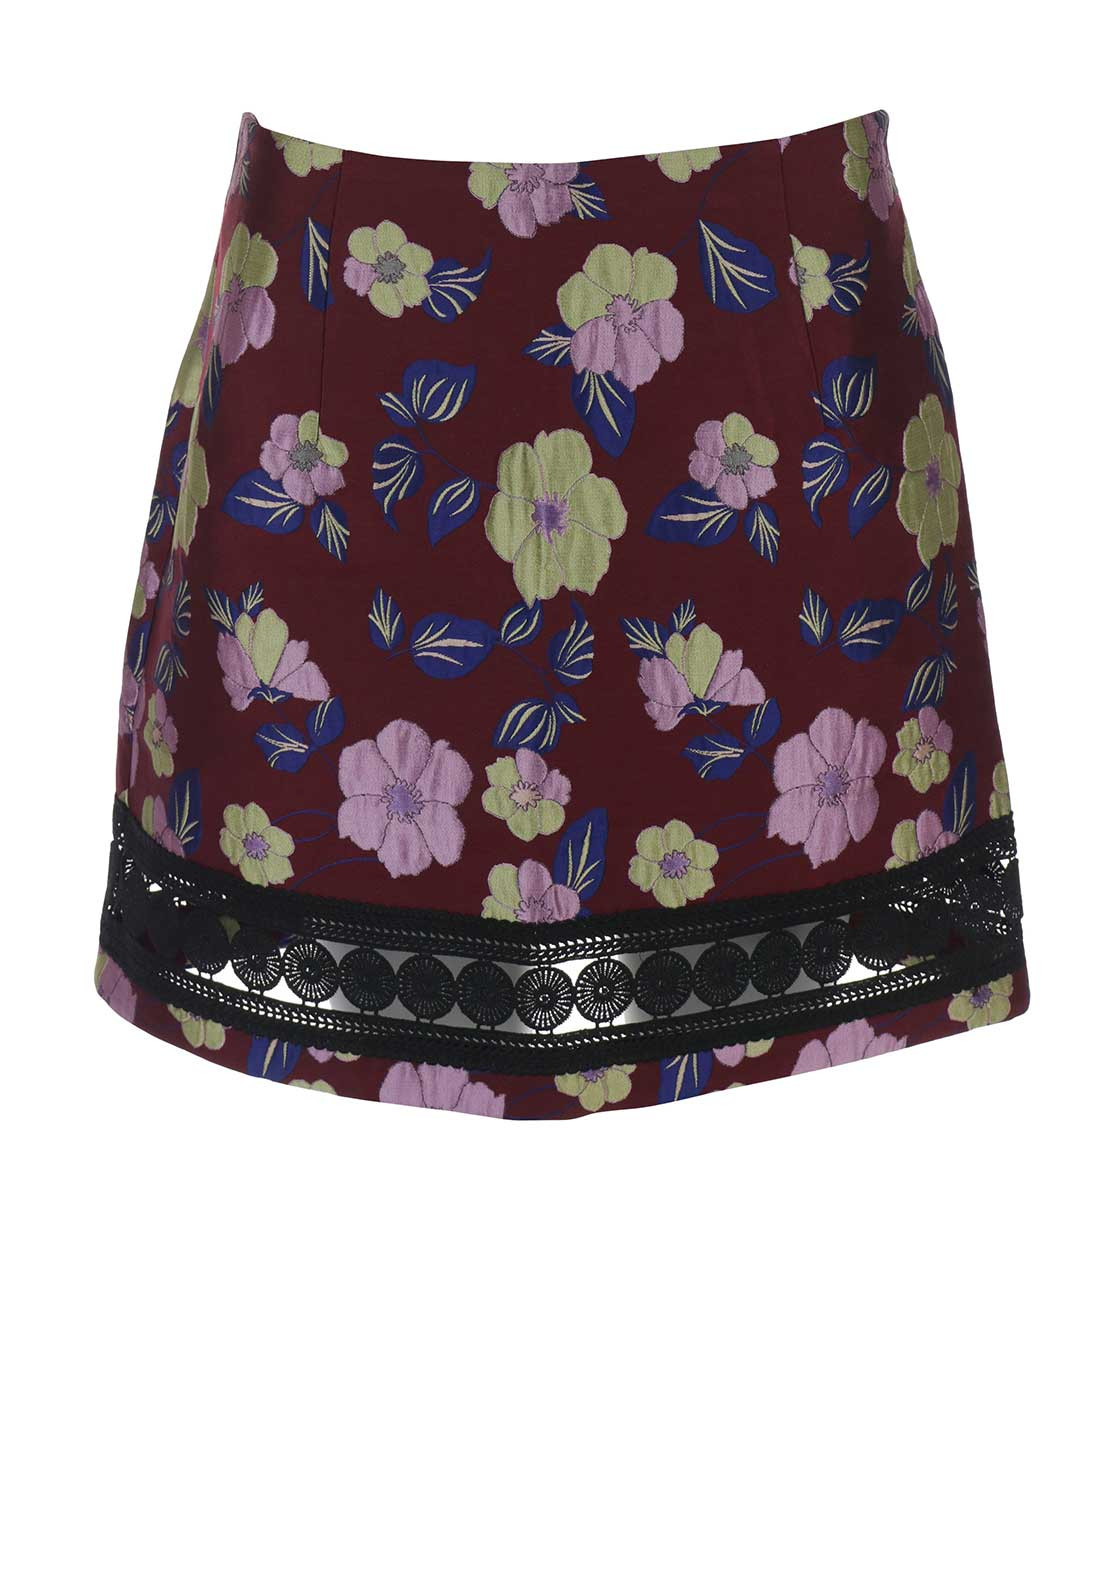 Glamorous Satin Embroidered Floral Skirt, Burgundy